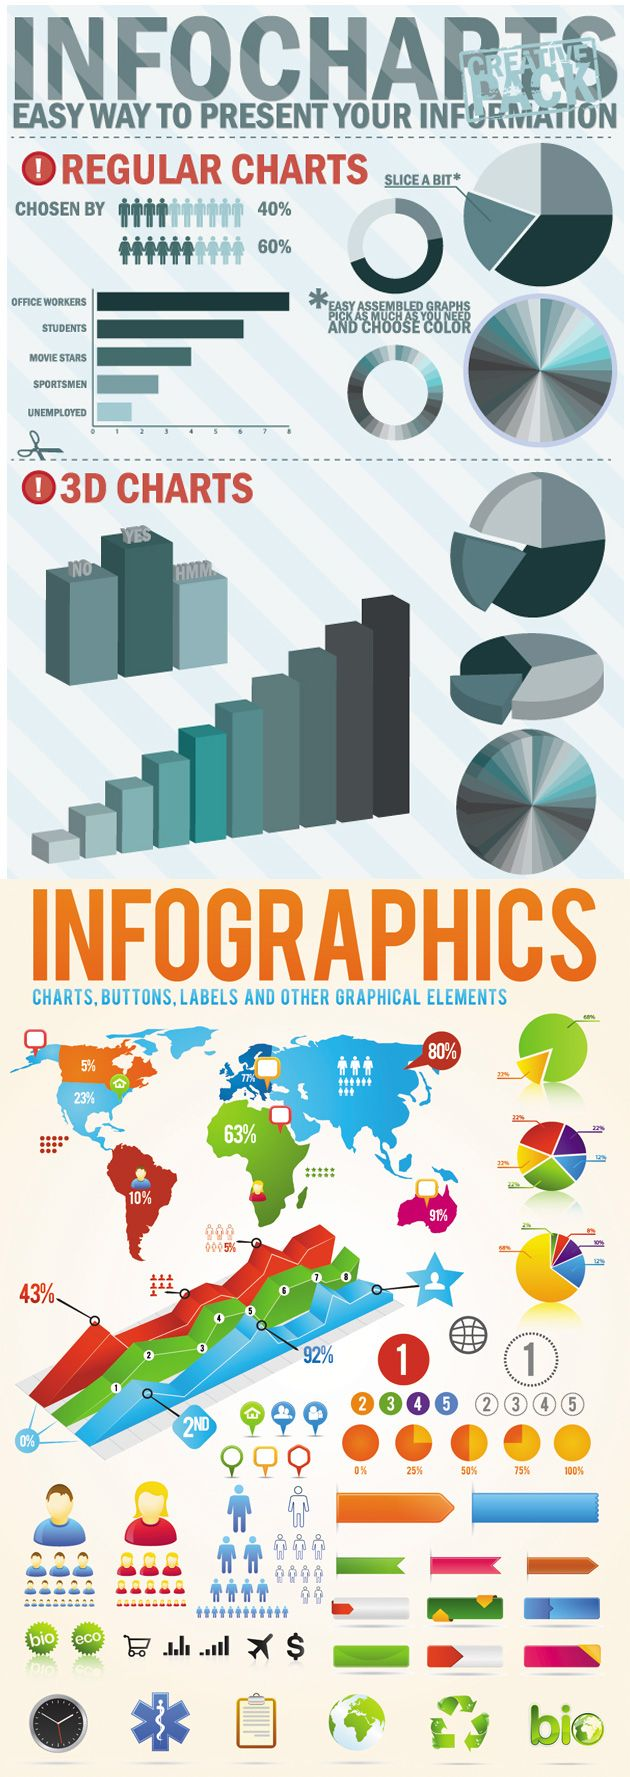 INFO GRAPHIC DESIGN ELEMENTS VECTOR http://www.falconhive.com/20-free-infographic-templates/